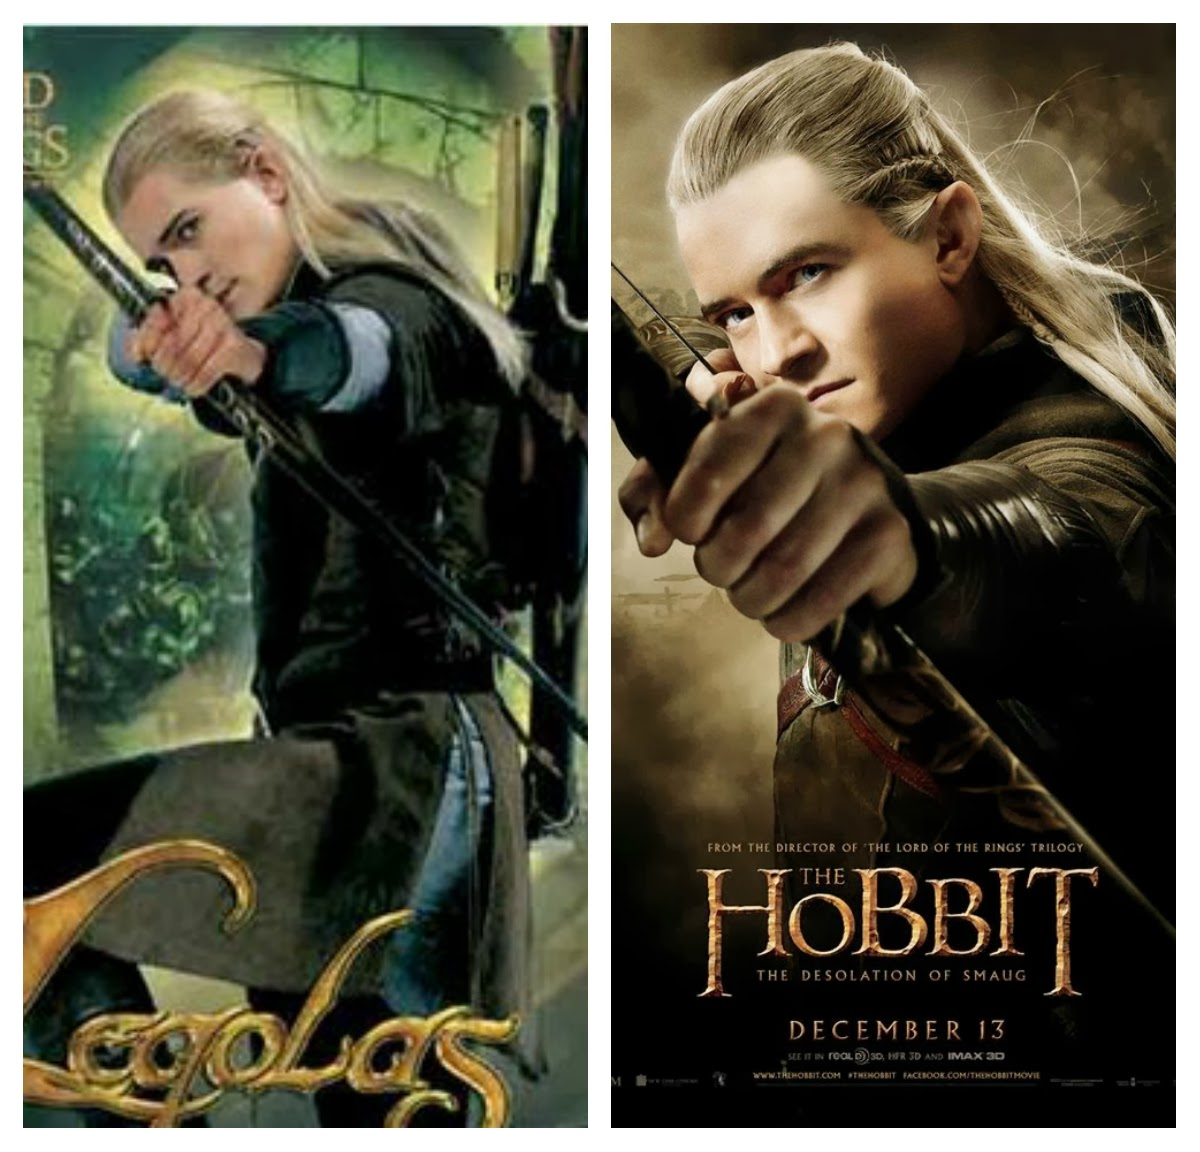 the hobbit: the desolation of smaug adventure fantasy the ... |The Hobbit The Desolation Of Smaug Legolas